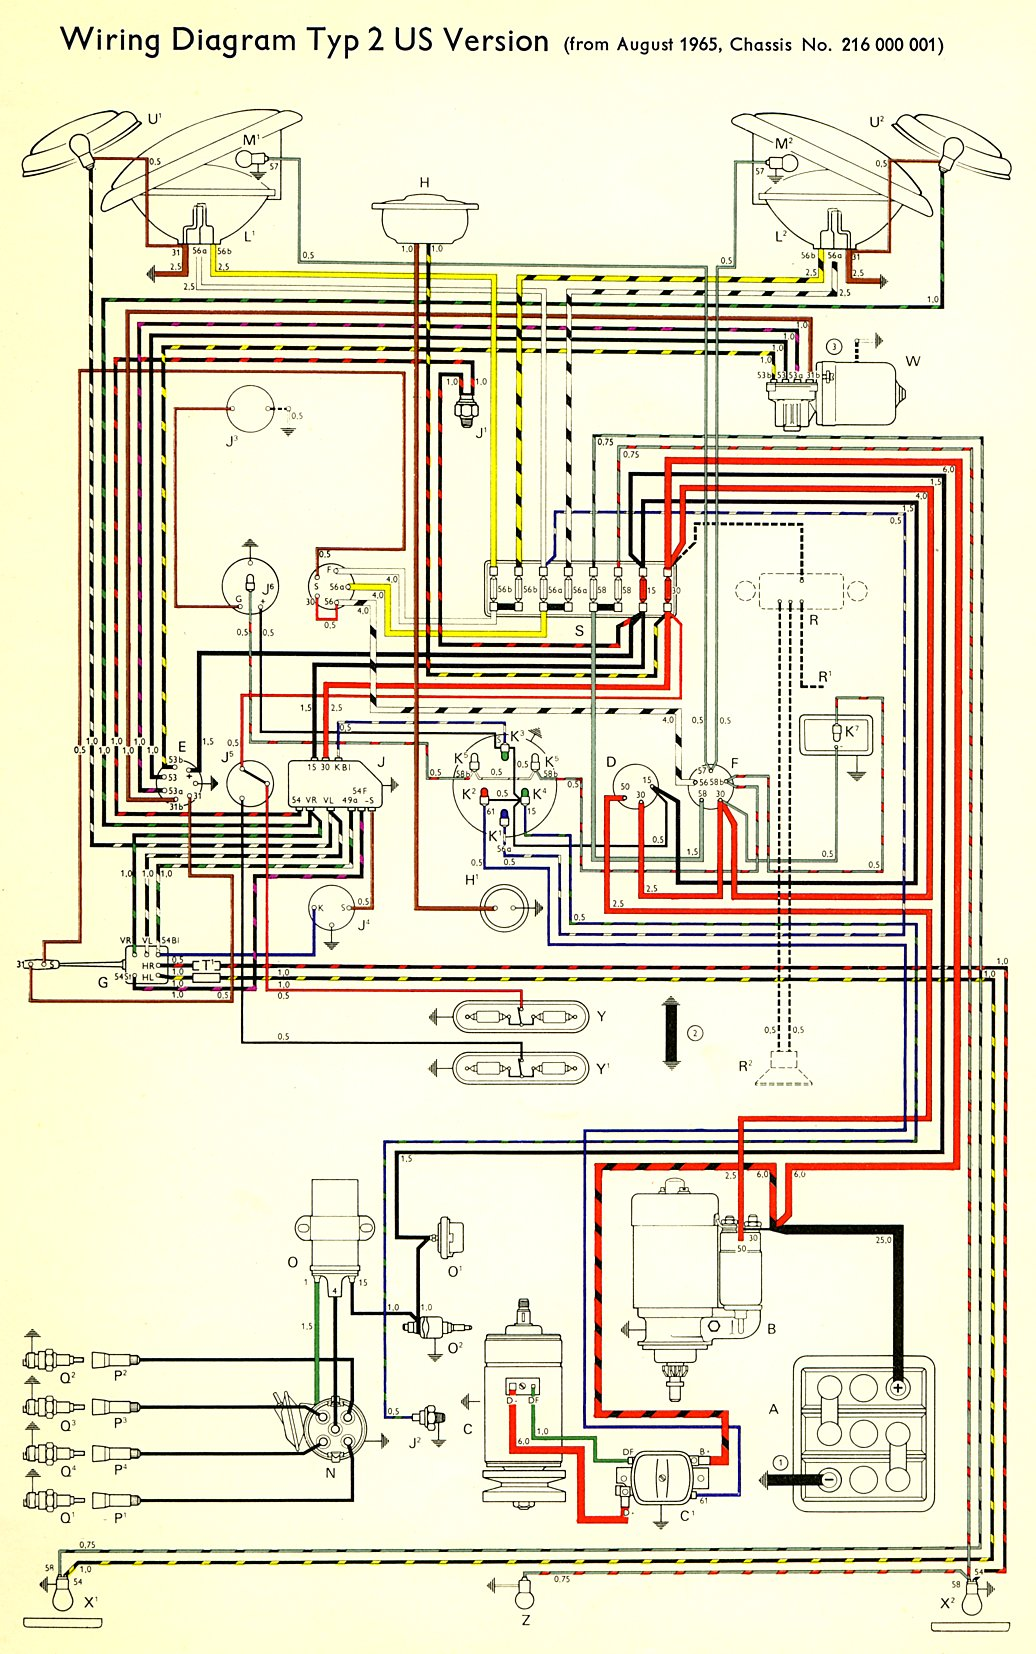 hight resolution of 1966 bus wiring diagram usa thegoldenbug com rh thegoldenbug com 1968 vw wiring diagram for a